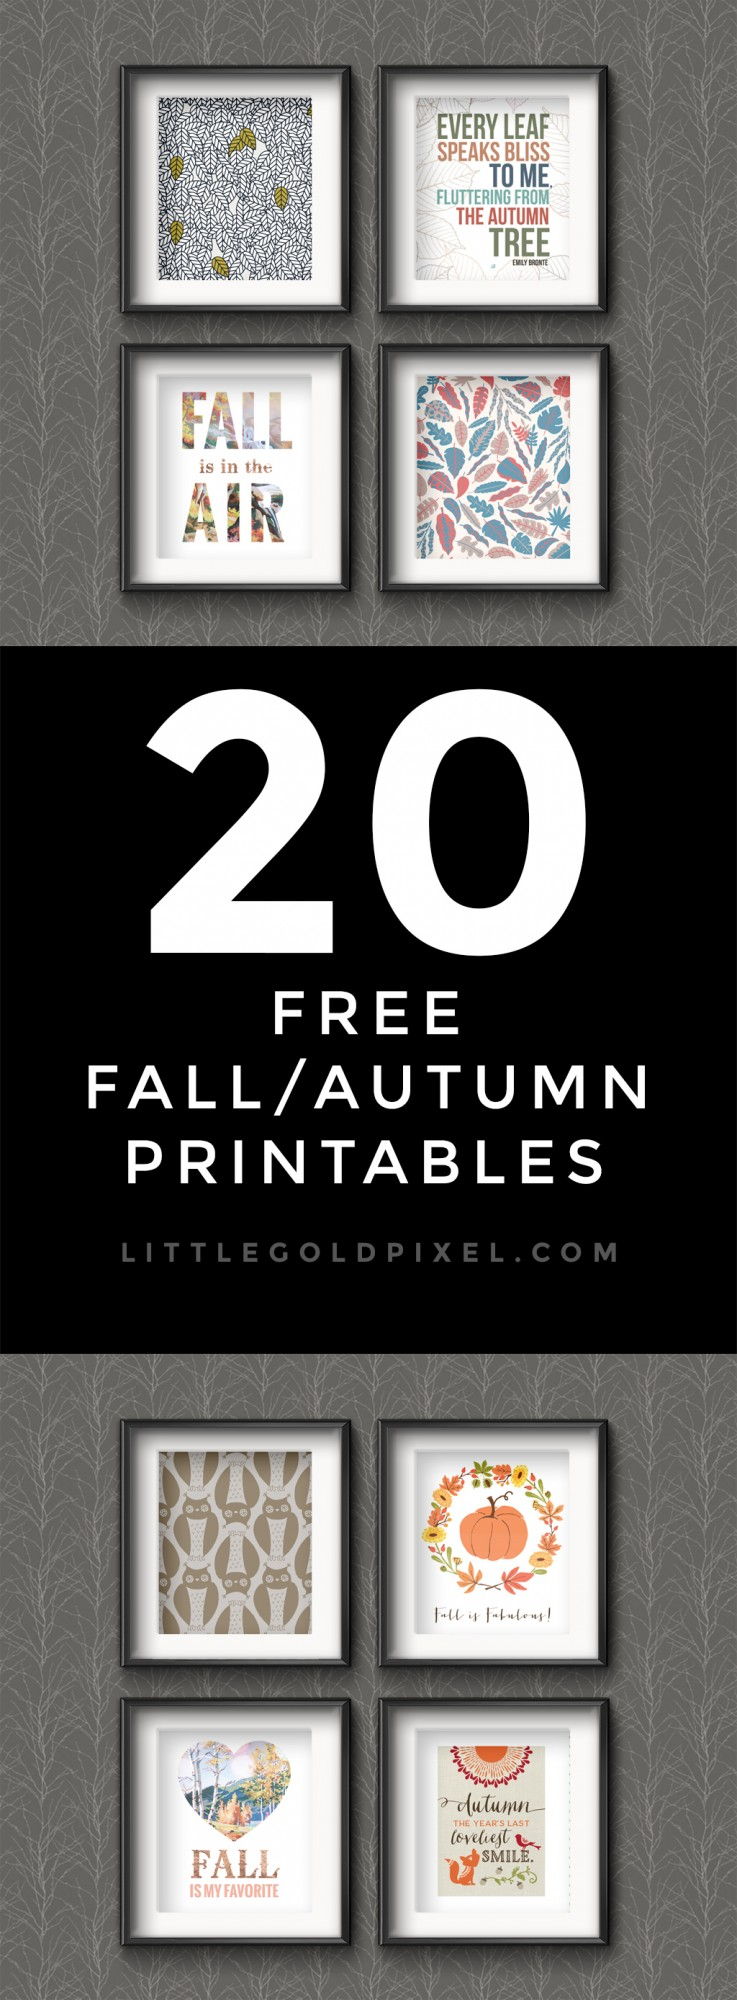 20 Awesome Free Fall Printables •Little Gold Pixel •In which I round up 20 Awesome Free Fall Printables that you can use to update your seasonal decor and gallery walls.